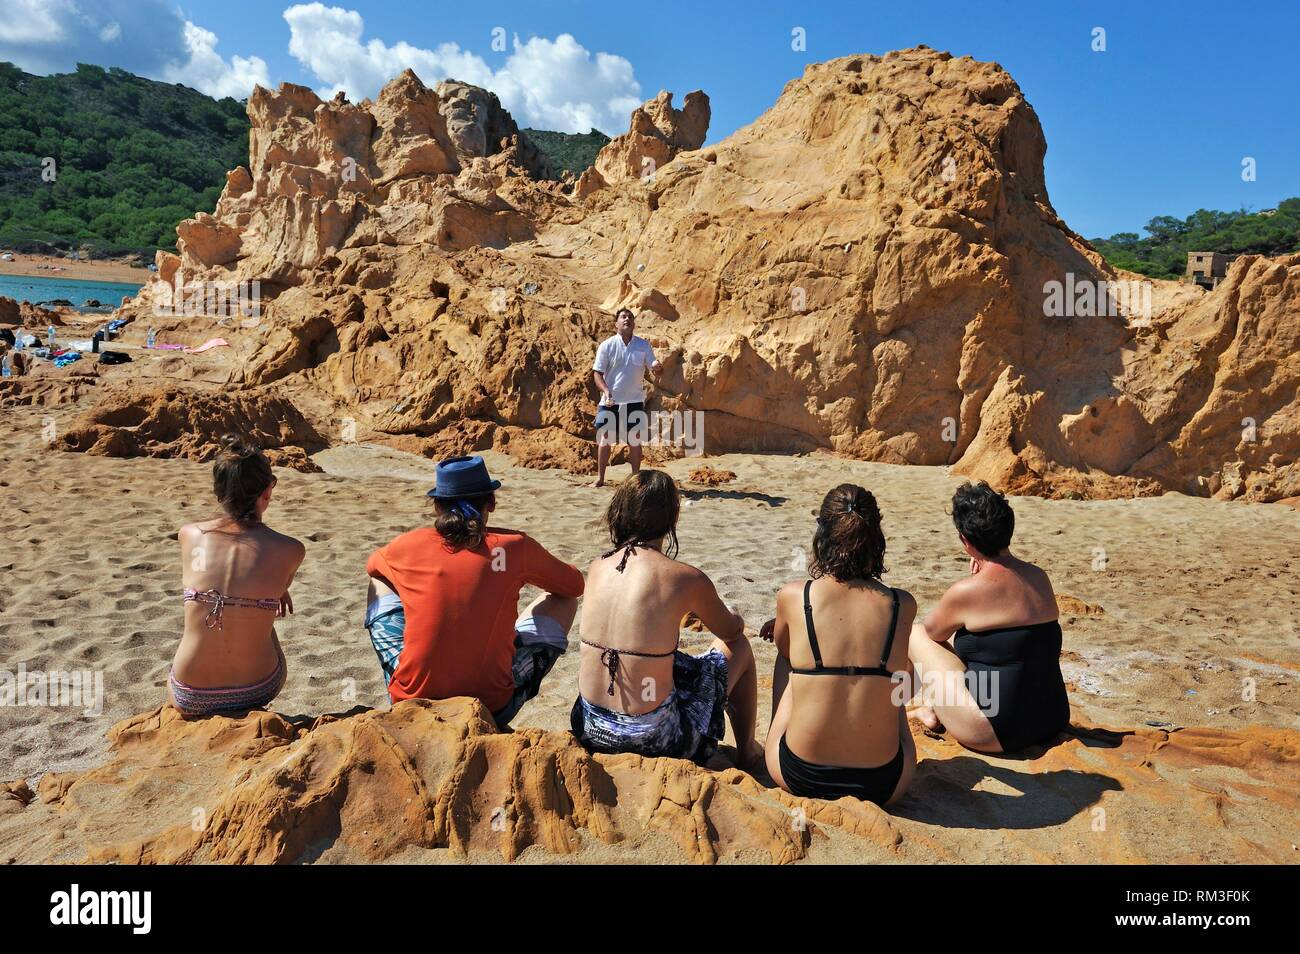 man juggling balls on the beach of an islet in the inlet Cala Pregonda near Cape Cavalleria on the North Coast of Menorca, Balearic Islands, Spain, - Stock Image